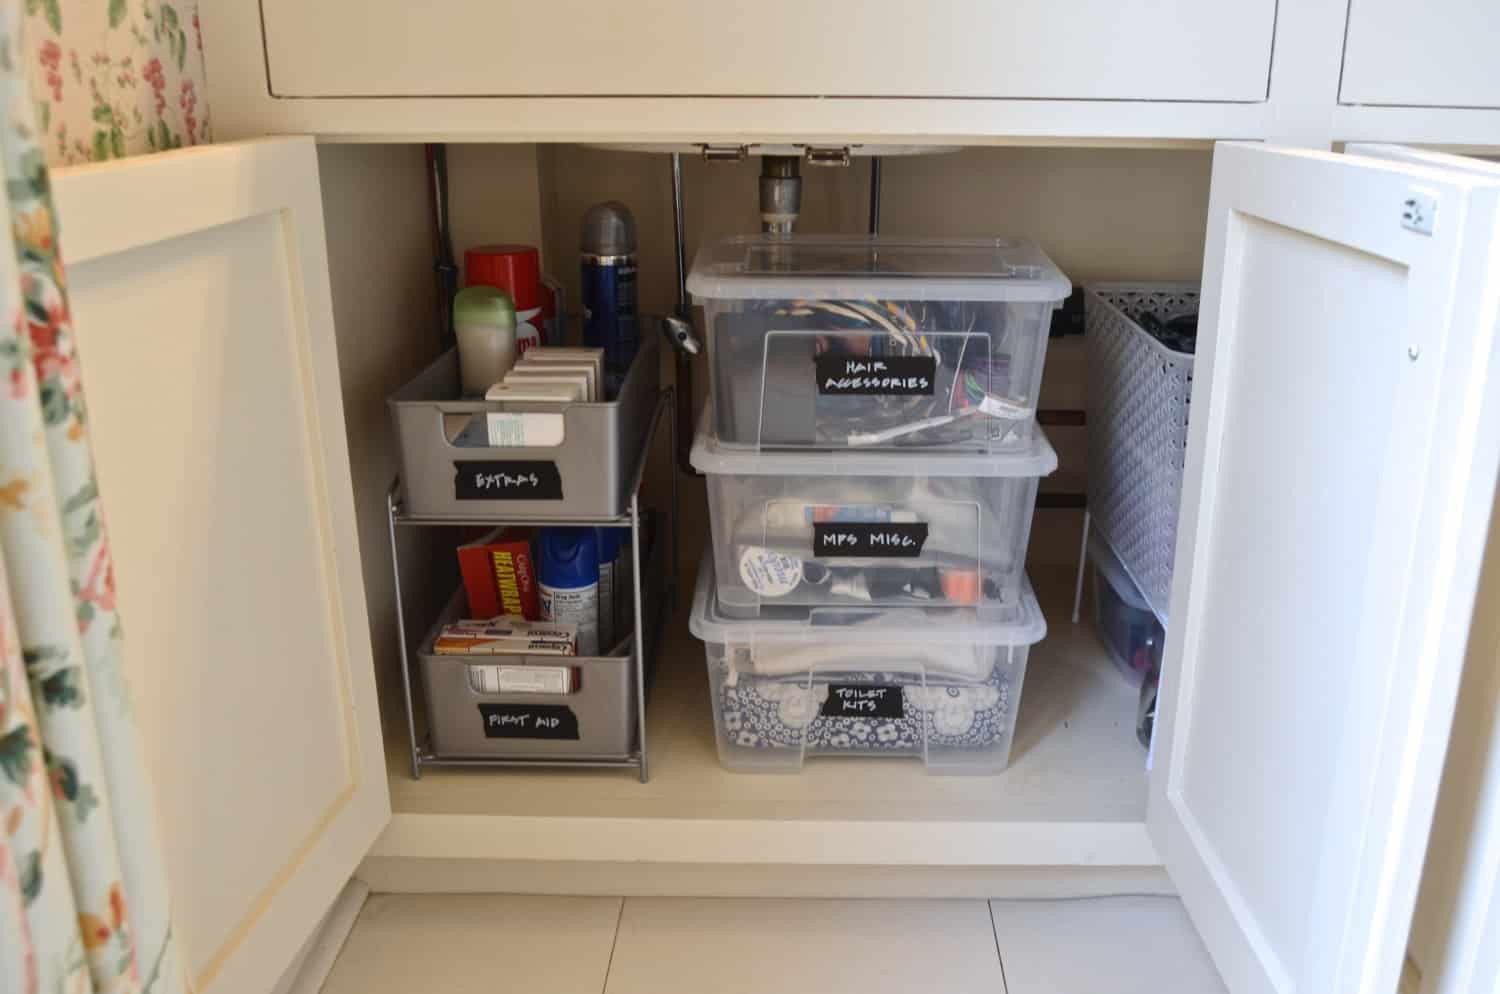 Best ideas about Bathroom Sink Organizer . Save or Pin How to Organize Under a Bathroom Sink Now.